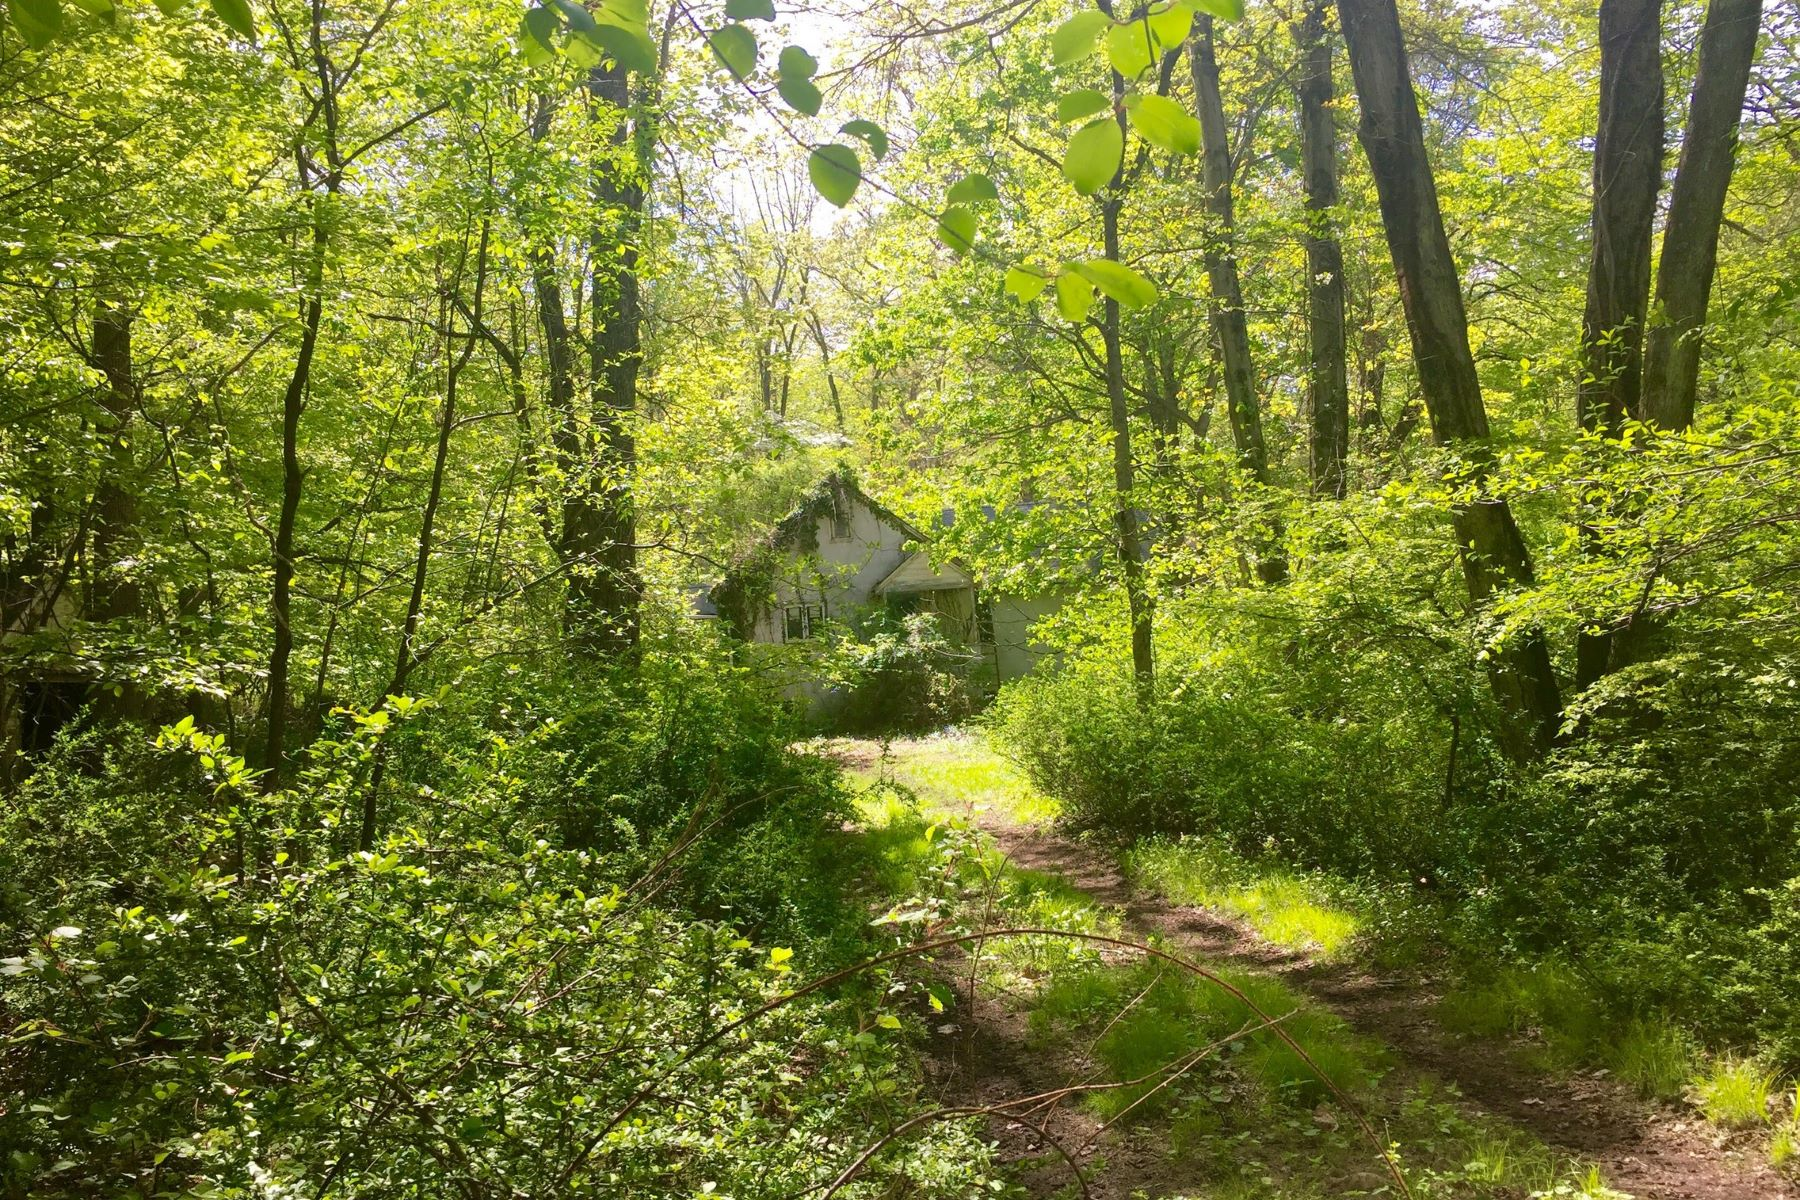 Single Family Home for Sale at Peaceful Sanctuary 160 South Mountain Rd New City, New York 10956 United States